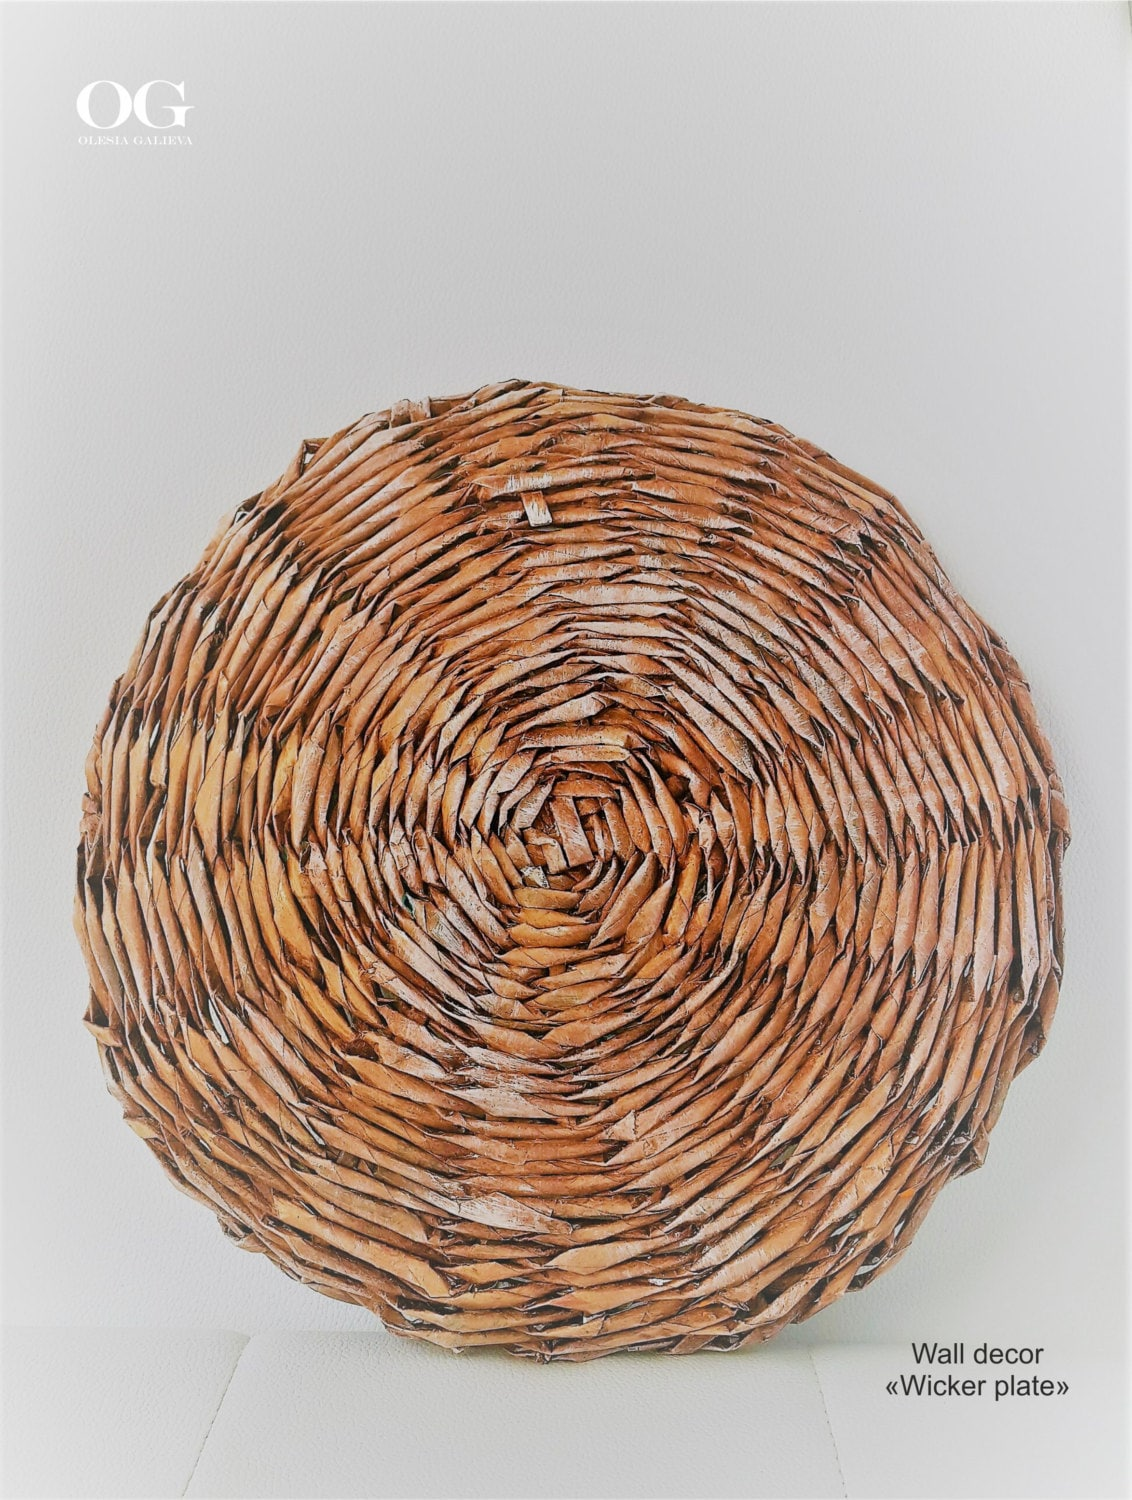 Rattan Wall Decor Round : Wall basket round decor wicker plate gifts